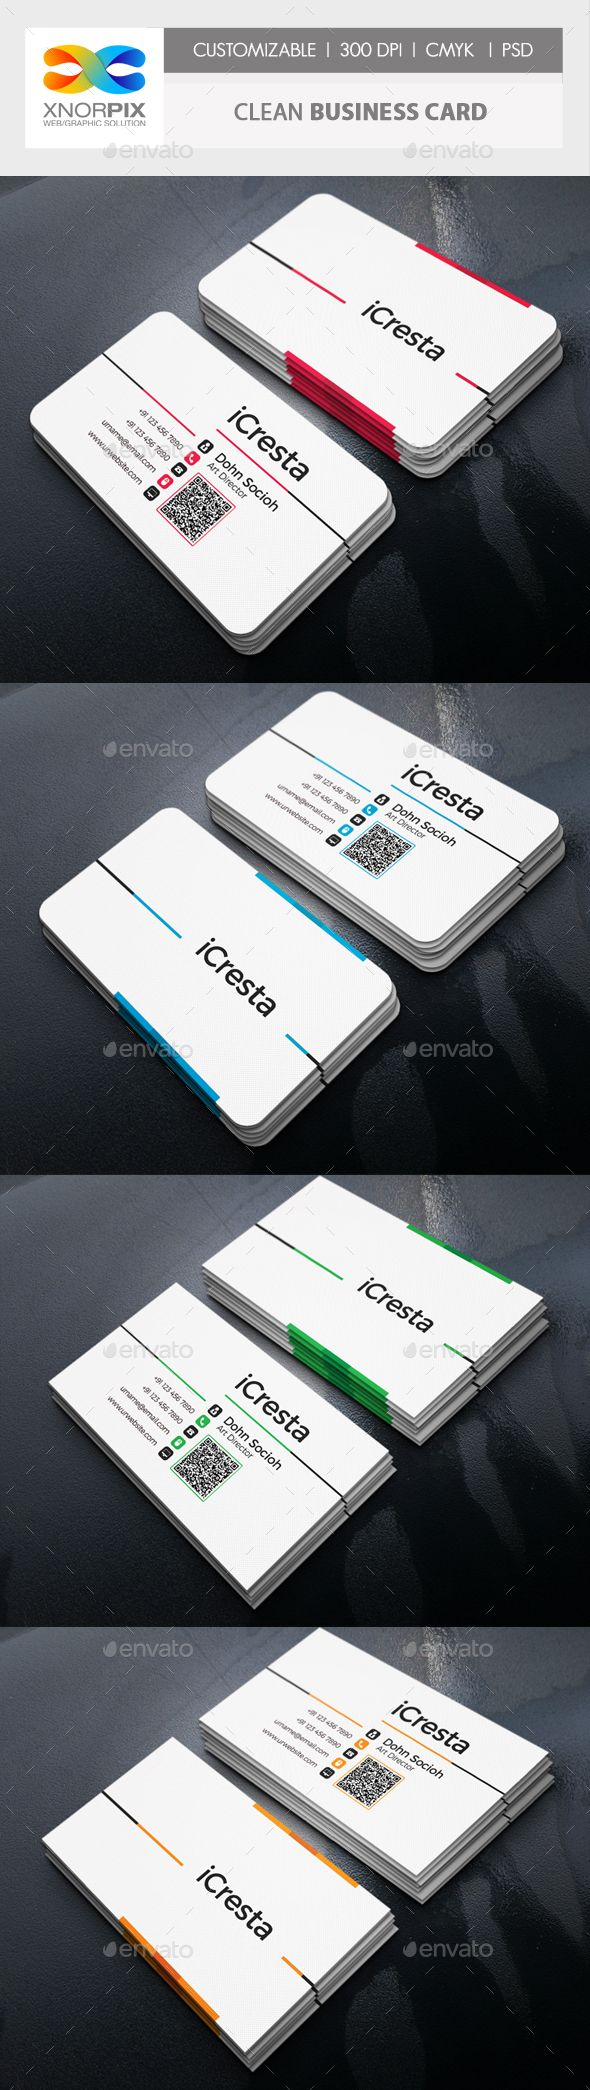 Best 25 cleaning business cards ideas on pinterest business clean business card baanklon Gallery